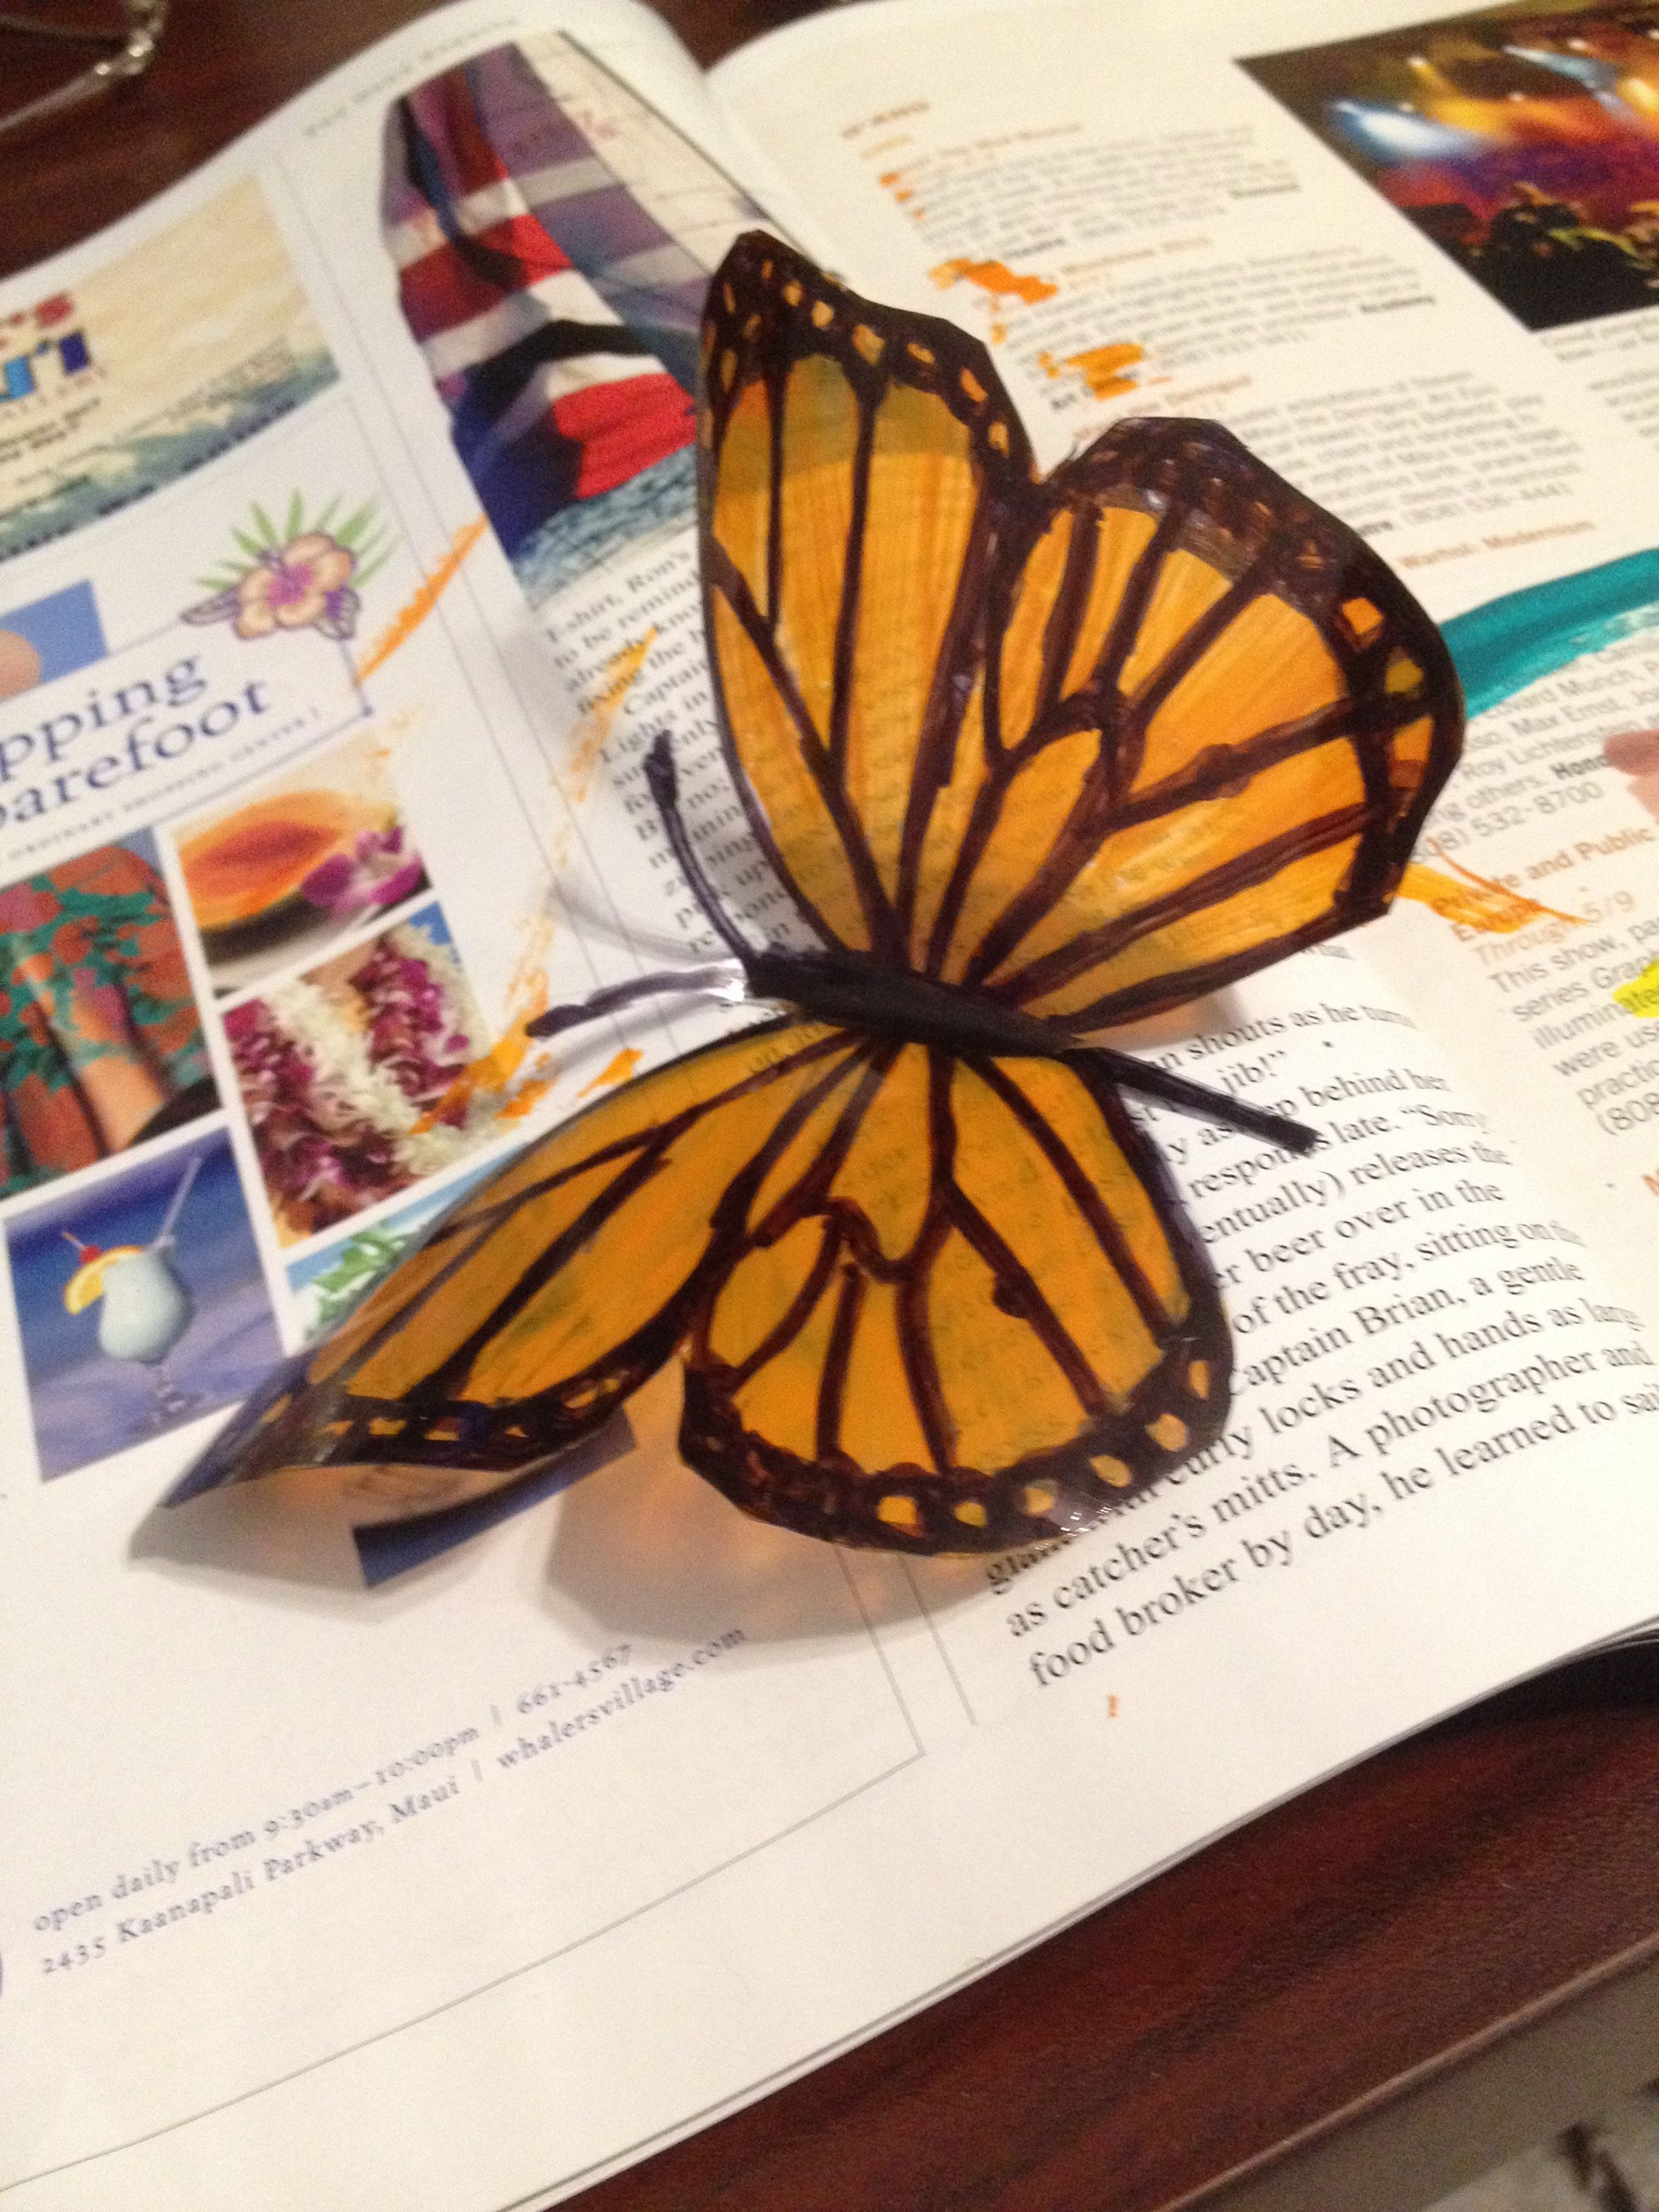 Butterflies from a plastic bottle with their own hands. Butterfly Patterns 46